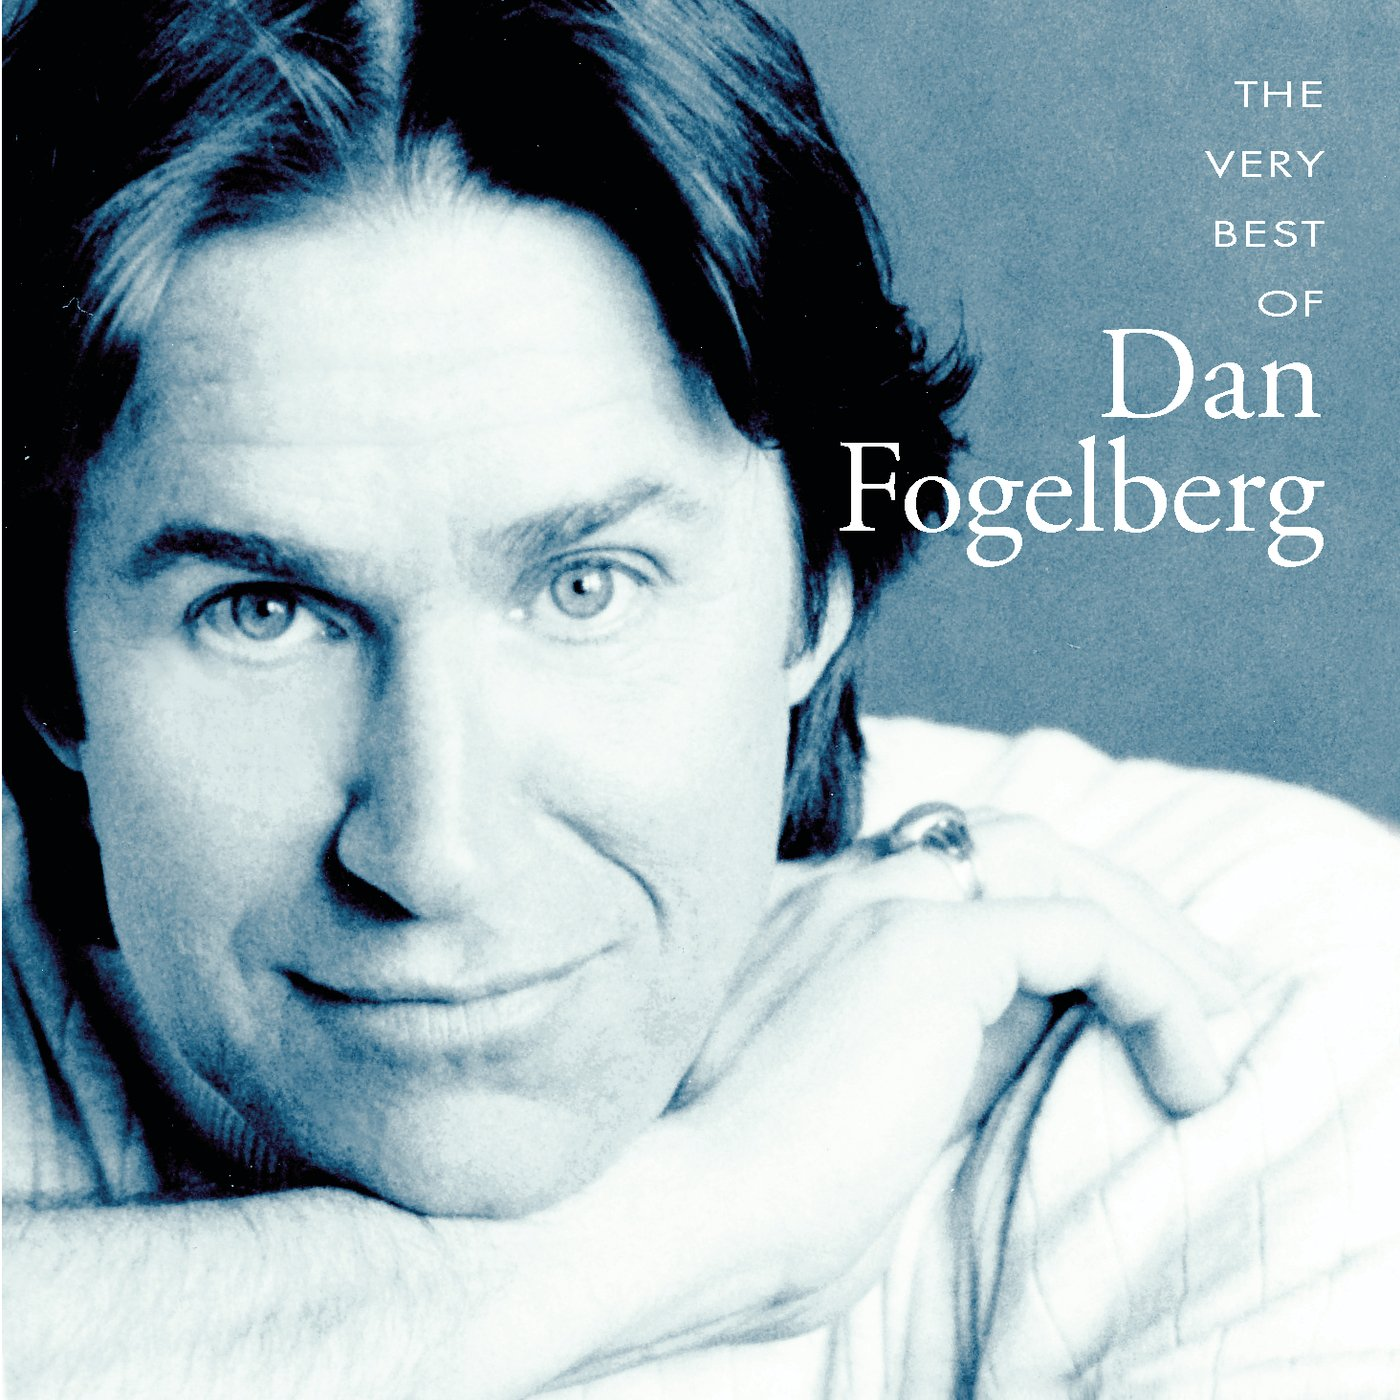 Check Out Dan FogelbergProducts On Amazon!